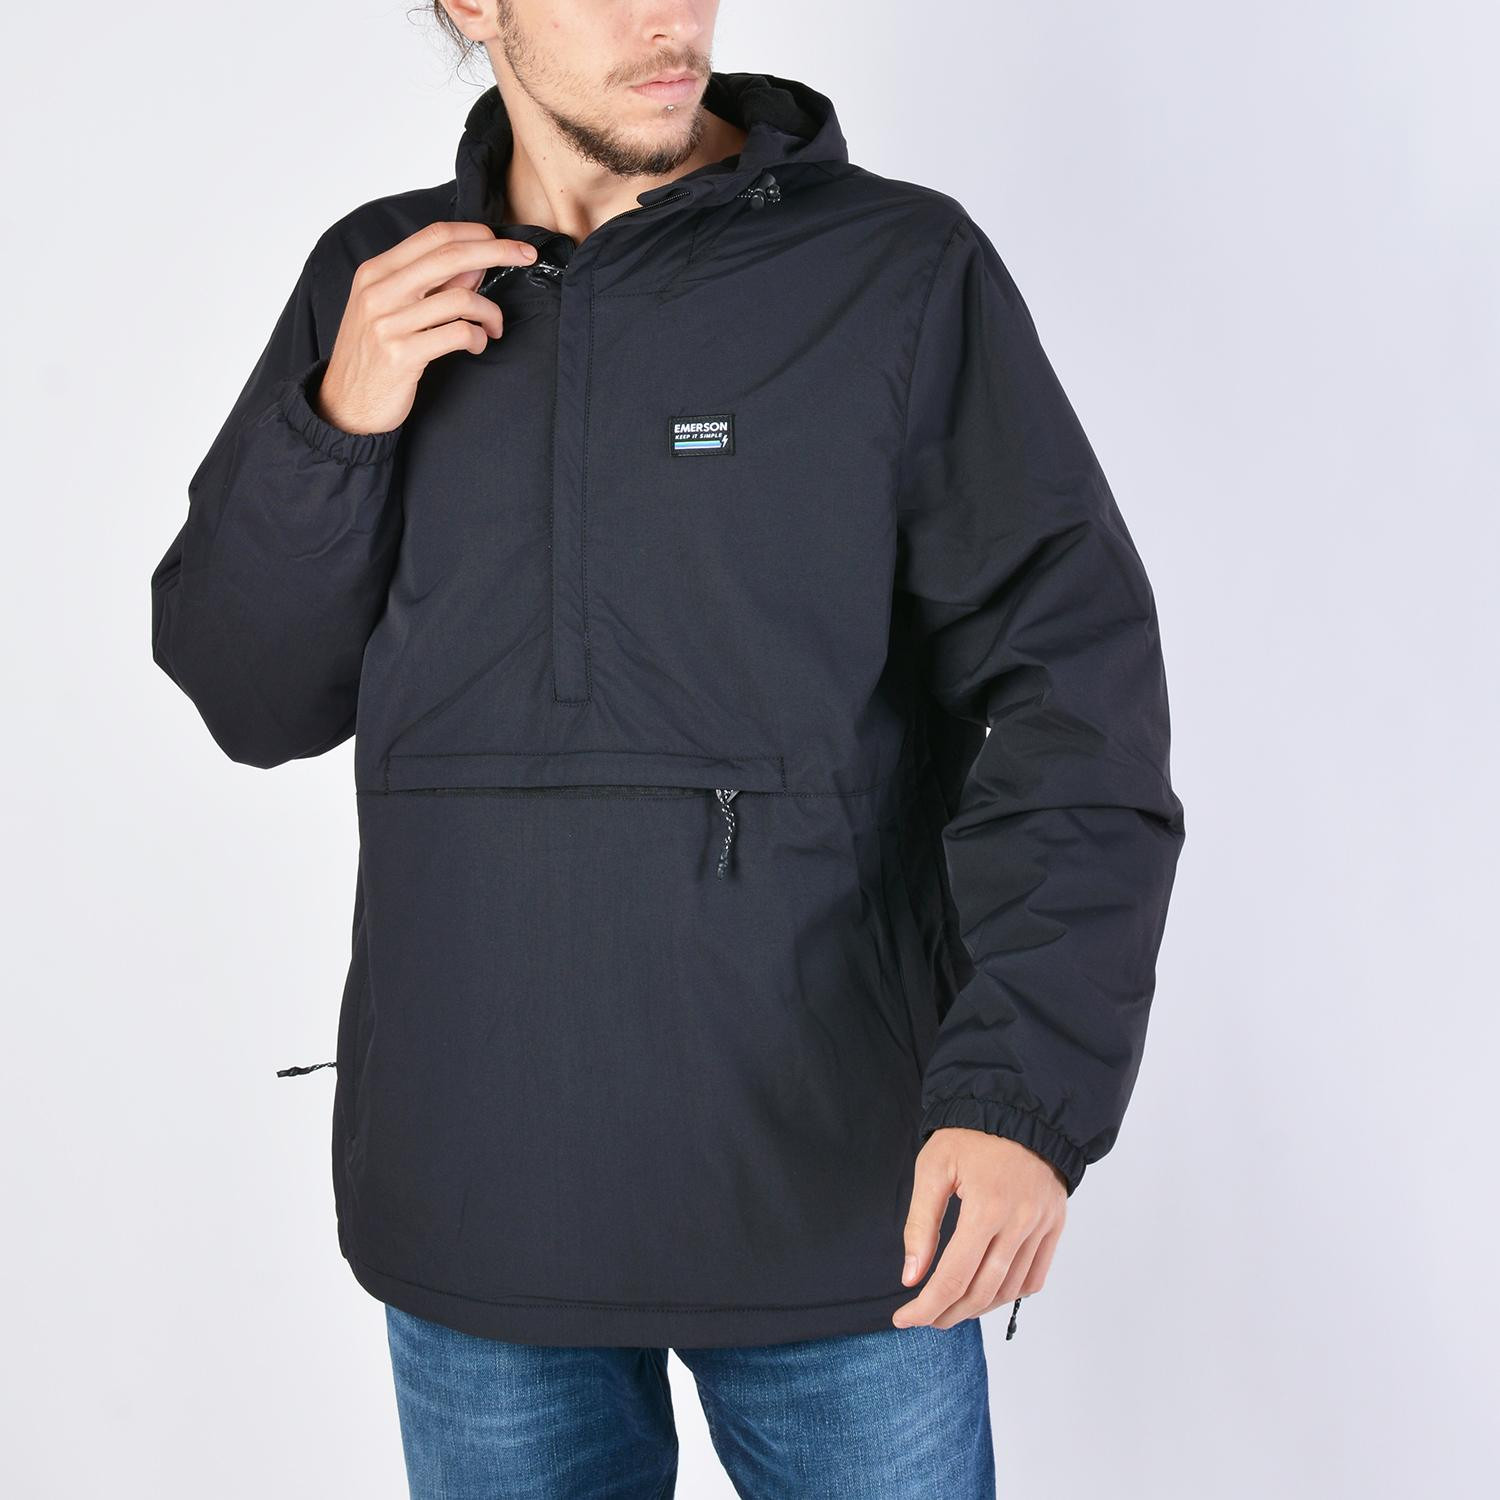 Emerson Men's Pull-Over Jacket With Hood (9000036076_40975)